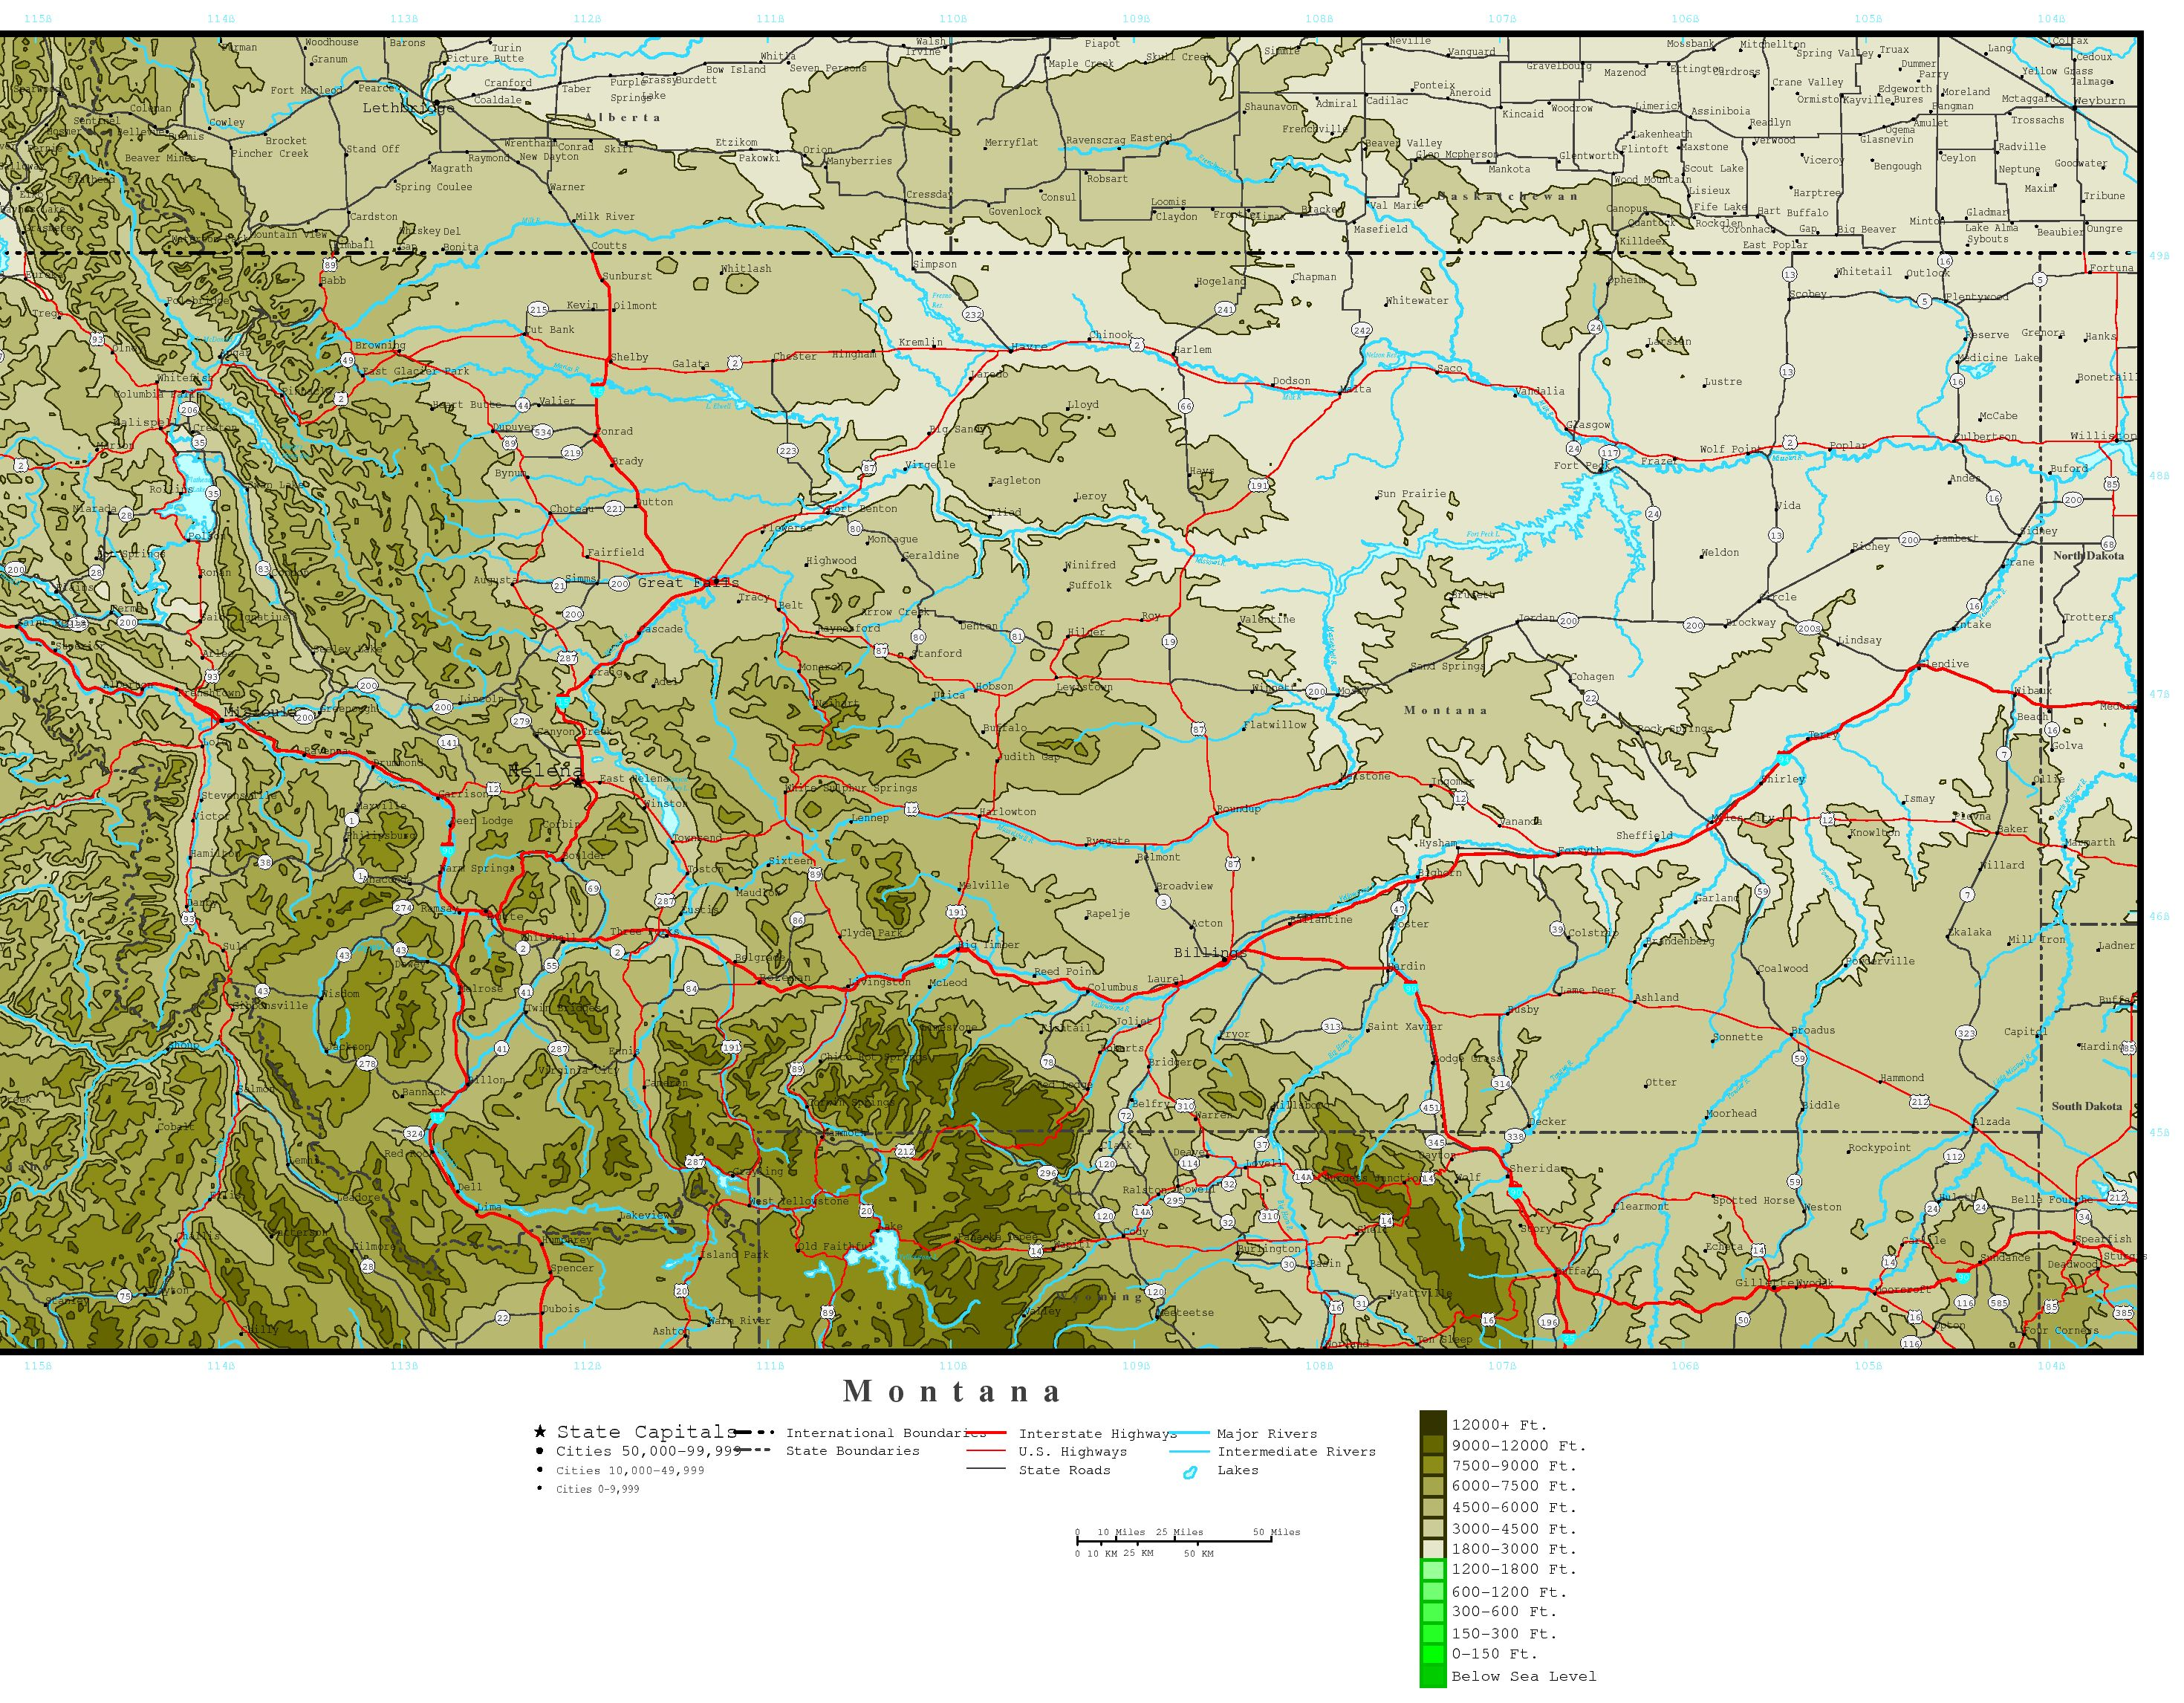 Montana Elevation Map - Montana map